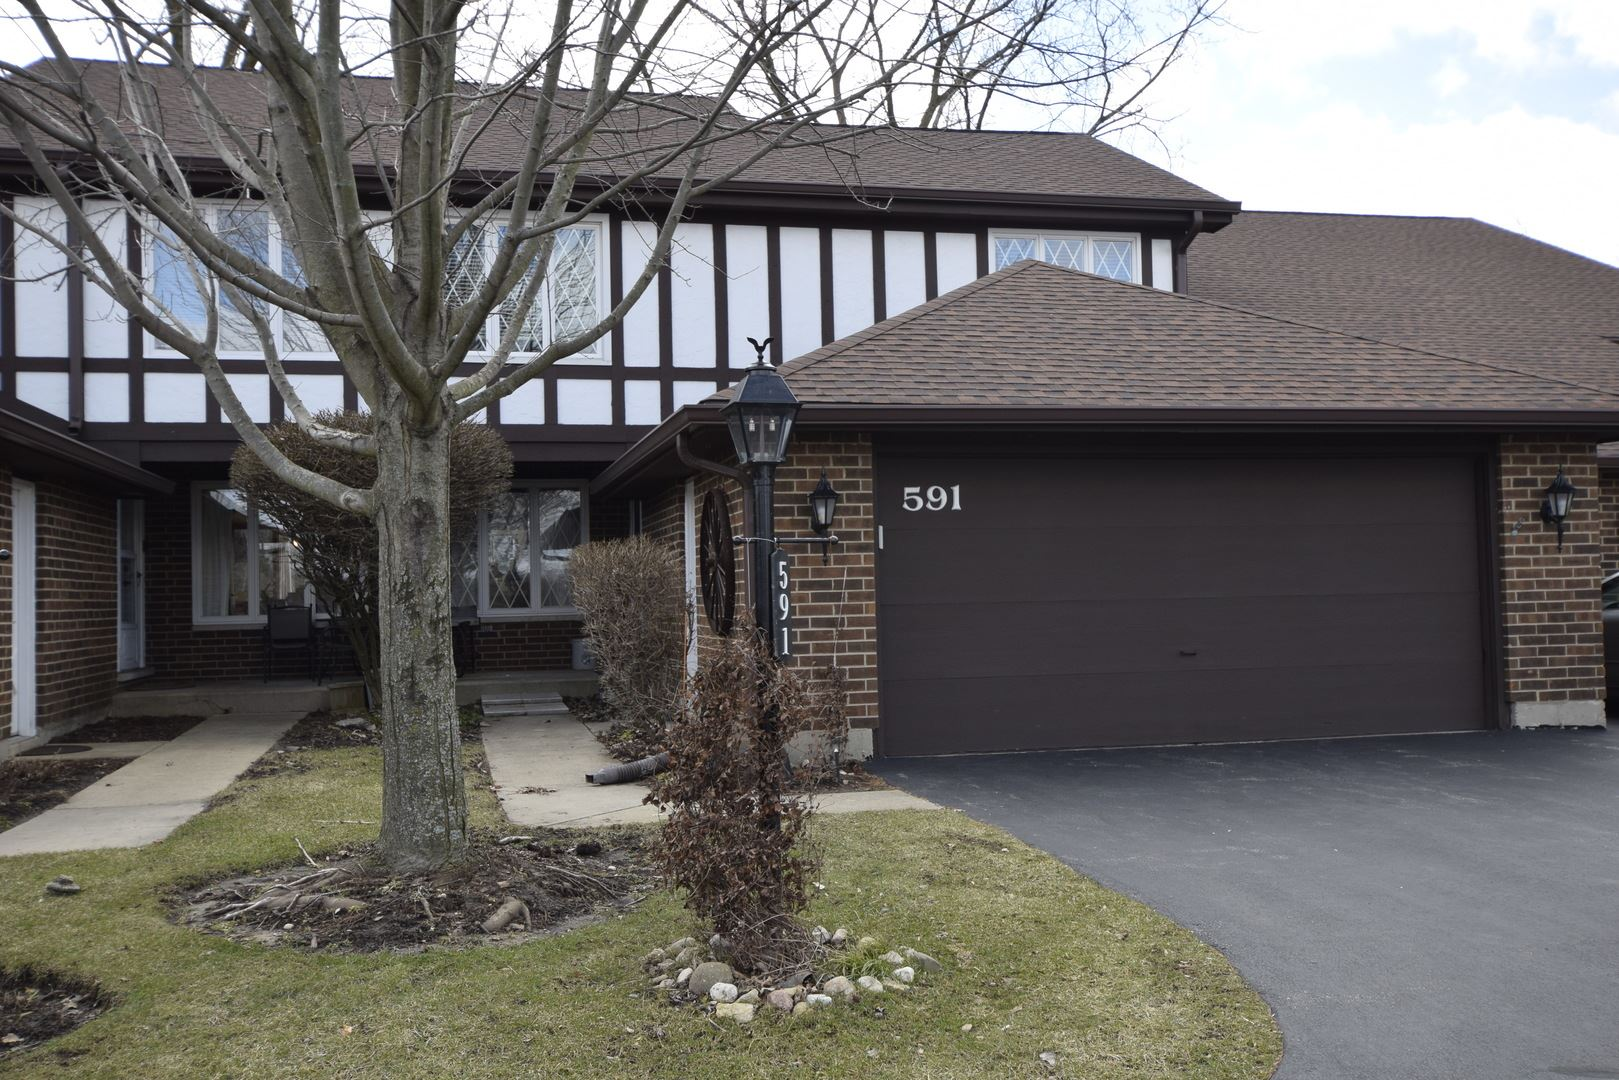 591 St Andrews Court, Crystal Lake, IL 60014 - #: 10674866